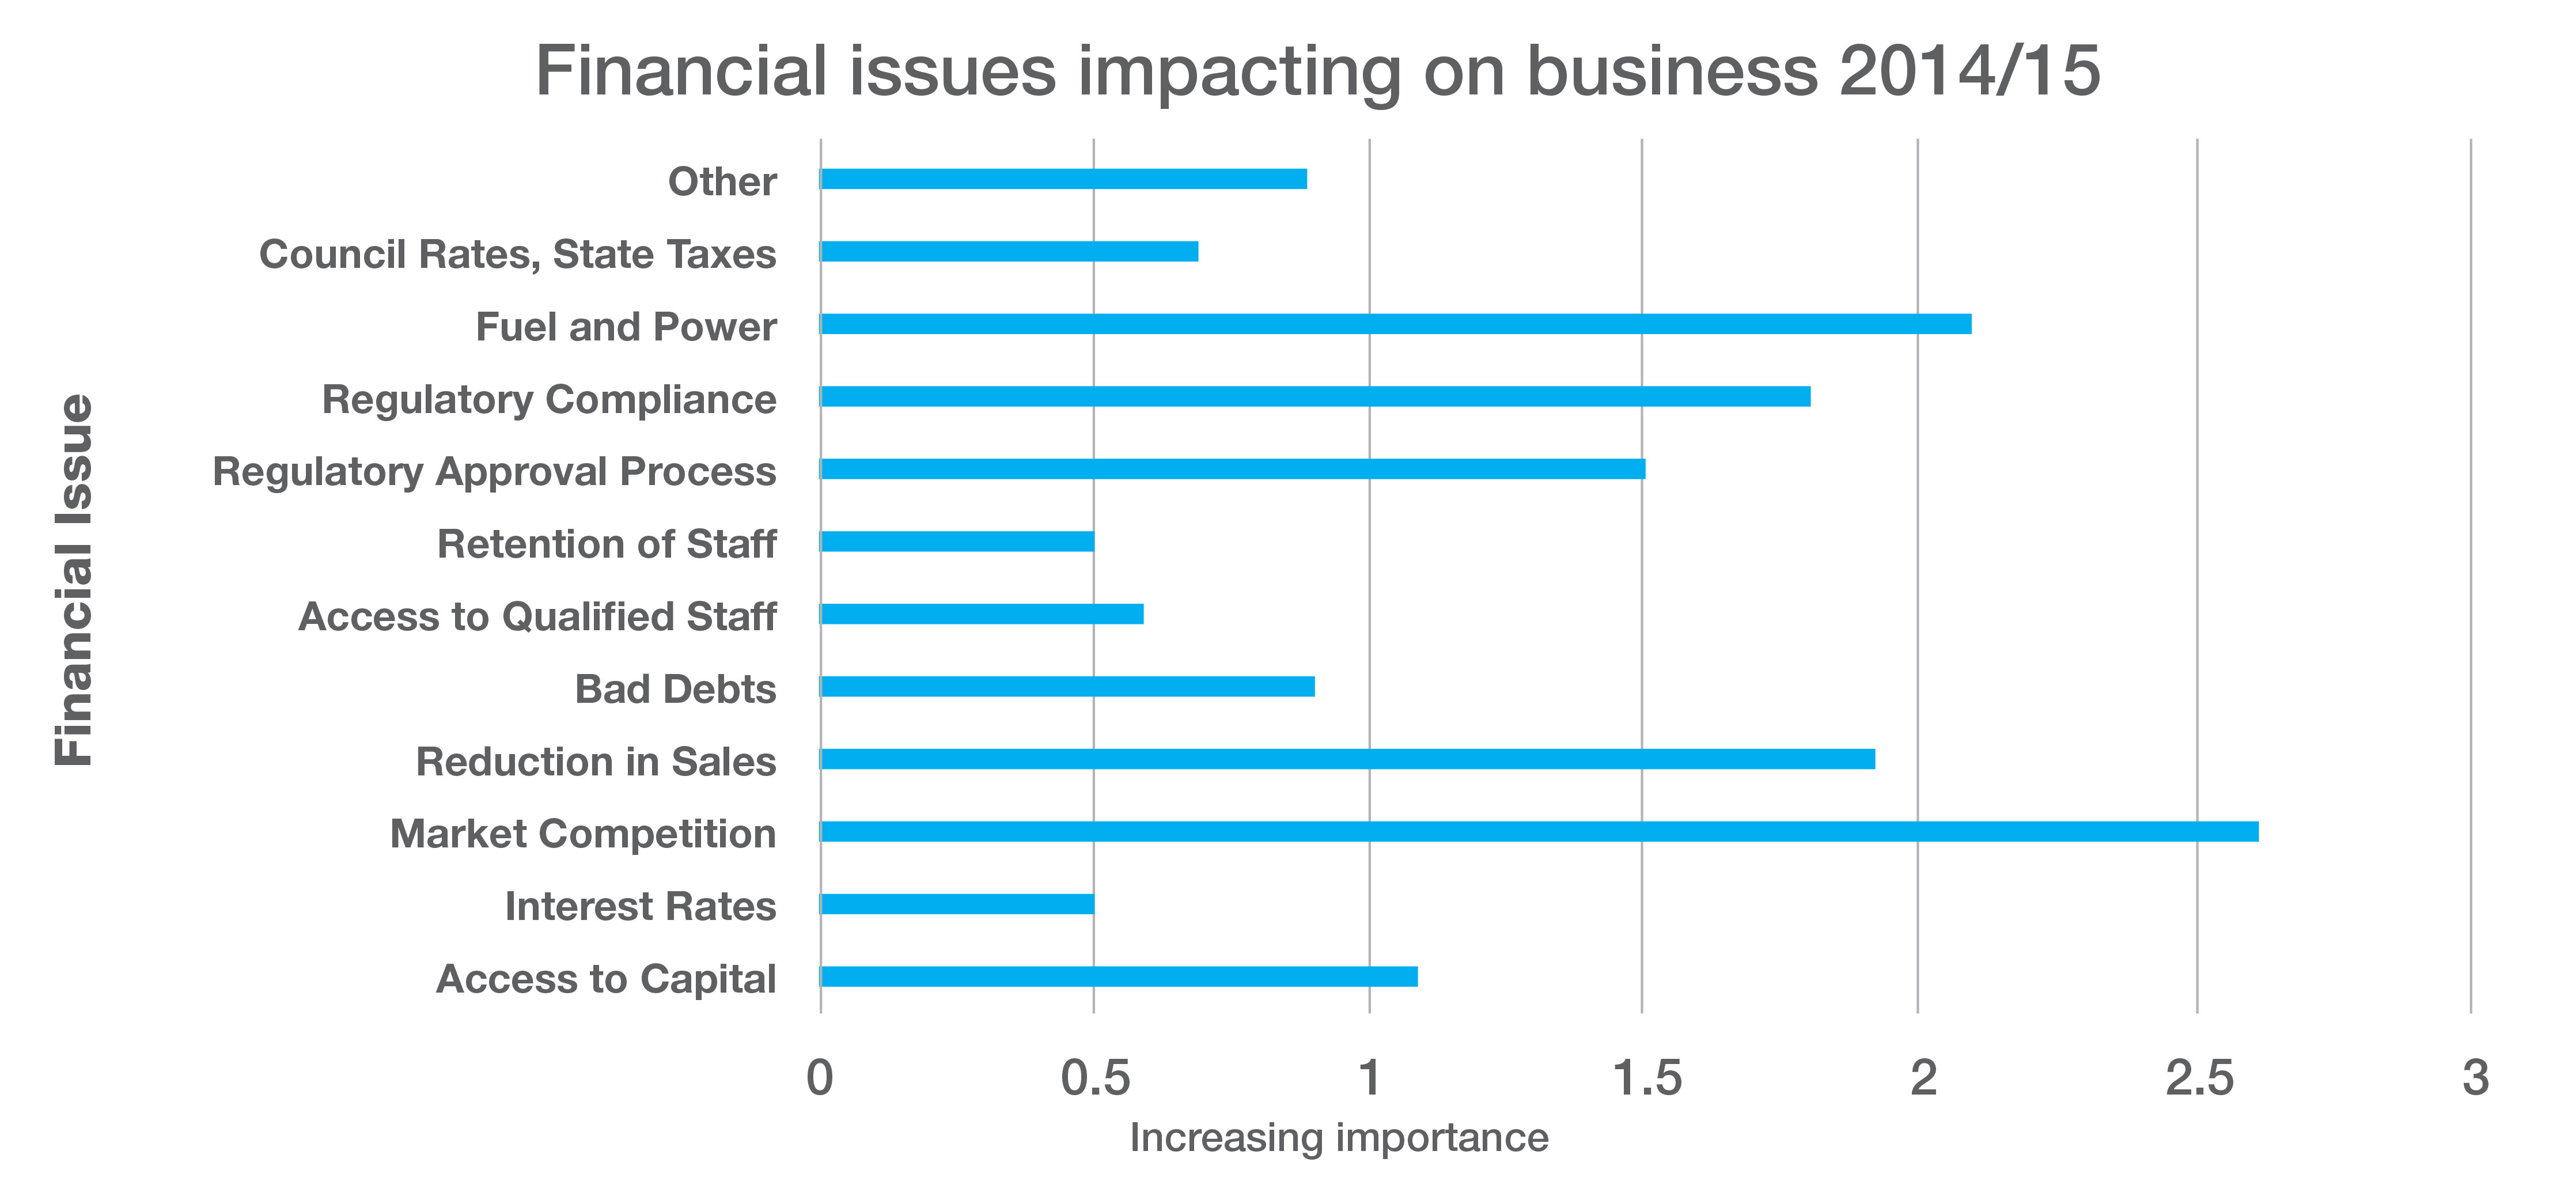 Chart 3 - Financial issues impacting on business 2014/15